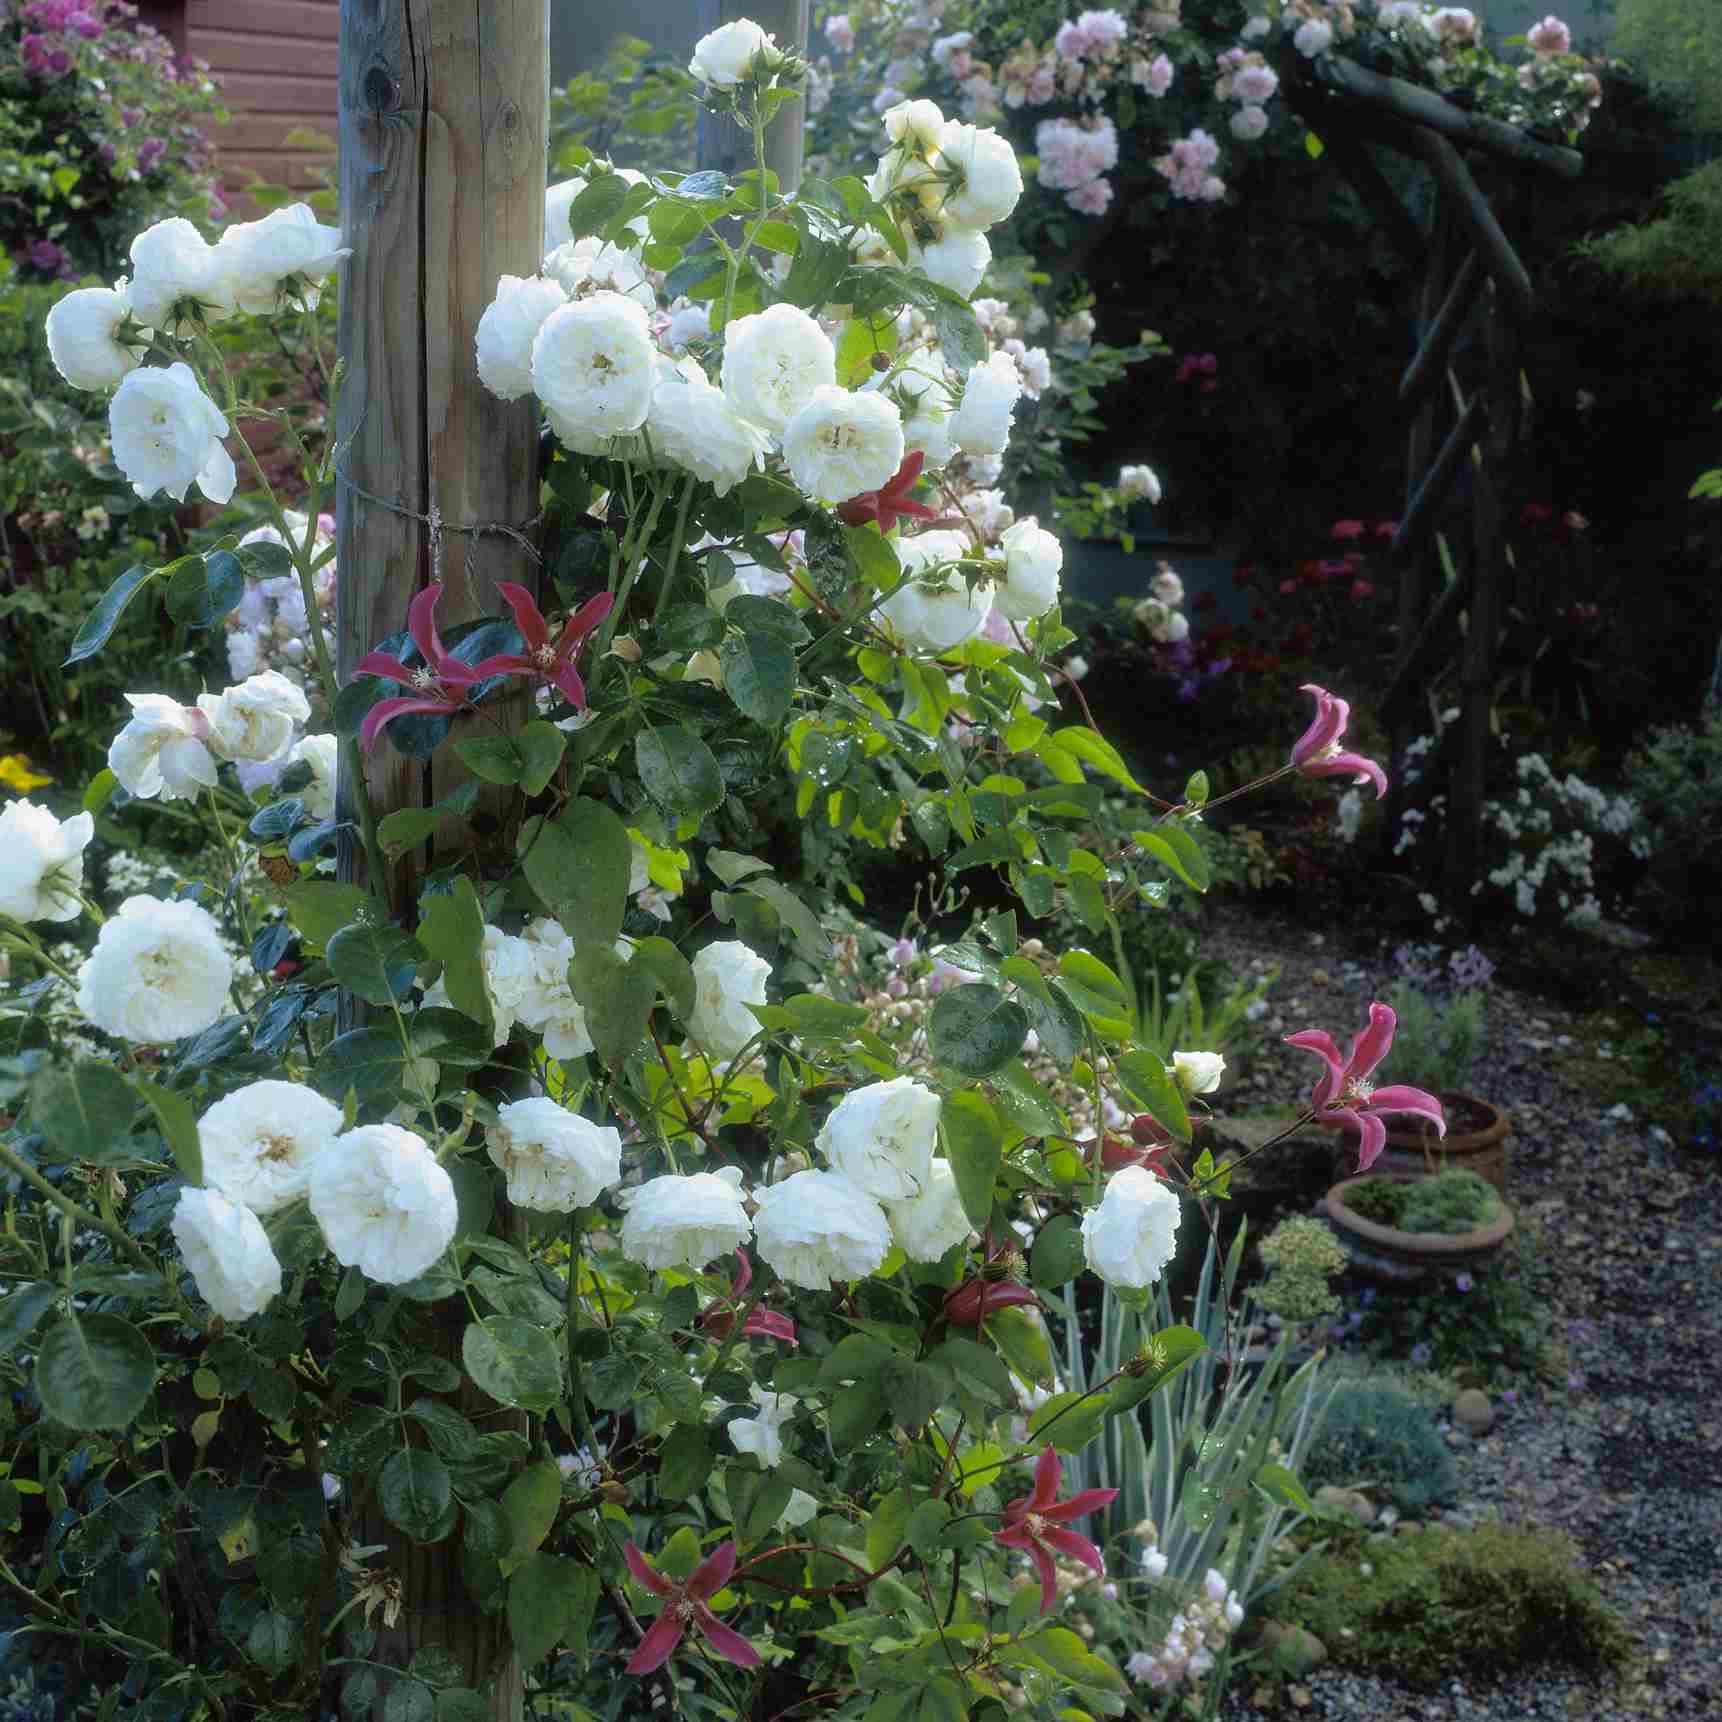 Clarence House rose with white blossoms